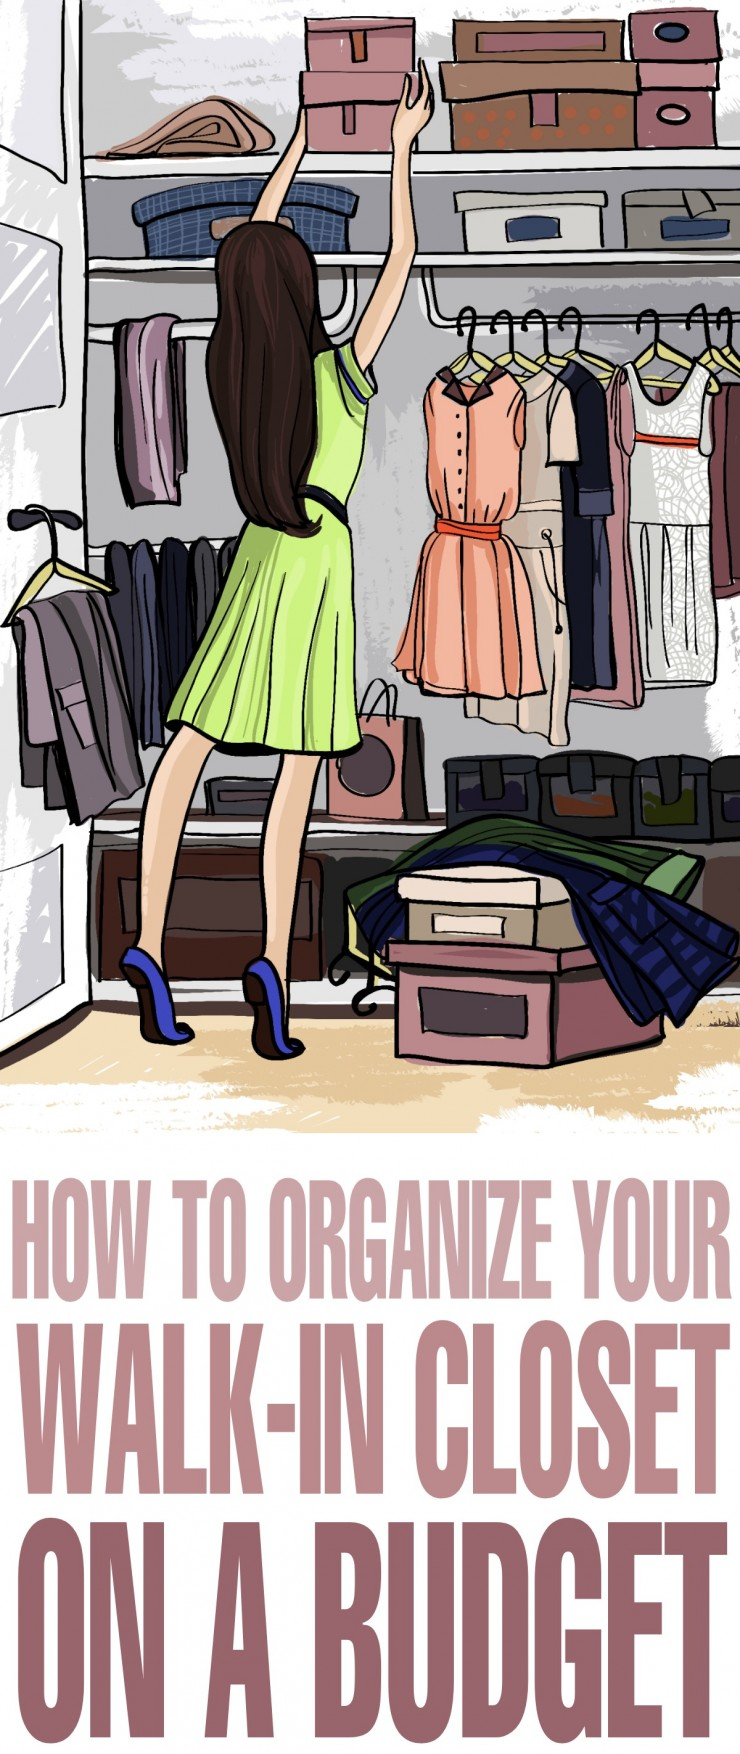 How to organize your walk in closet on a budget frugal for How to organize your walk in closet